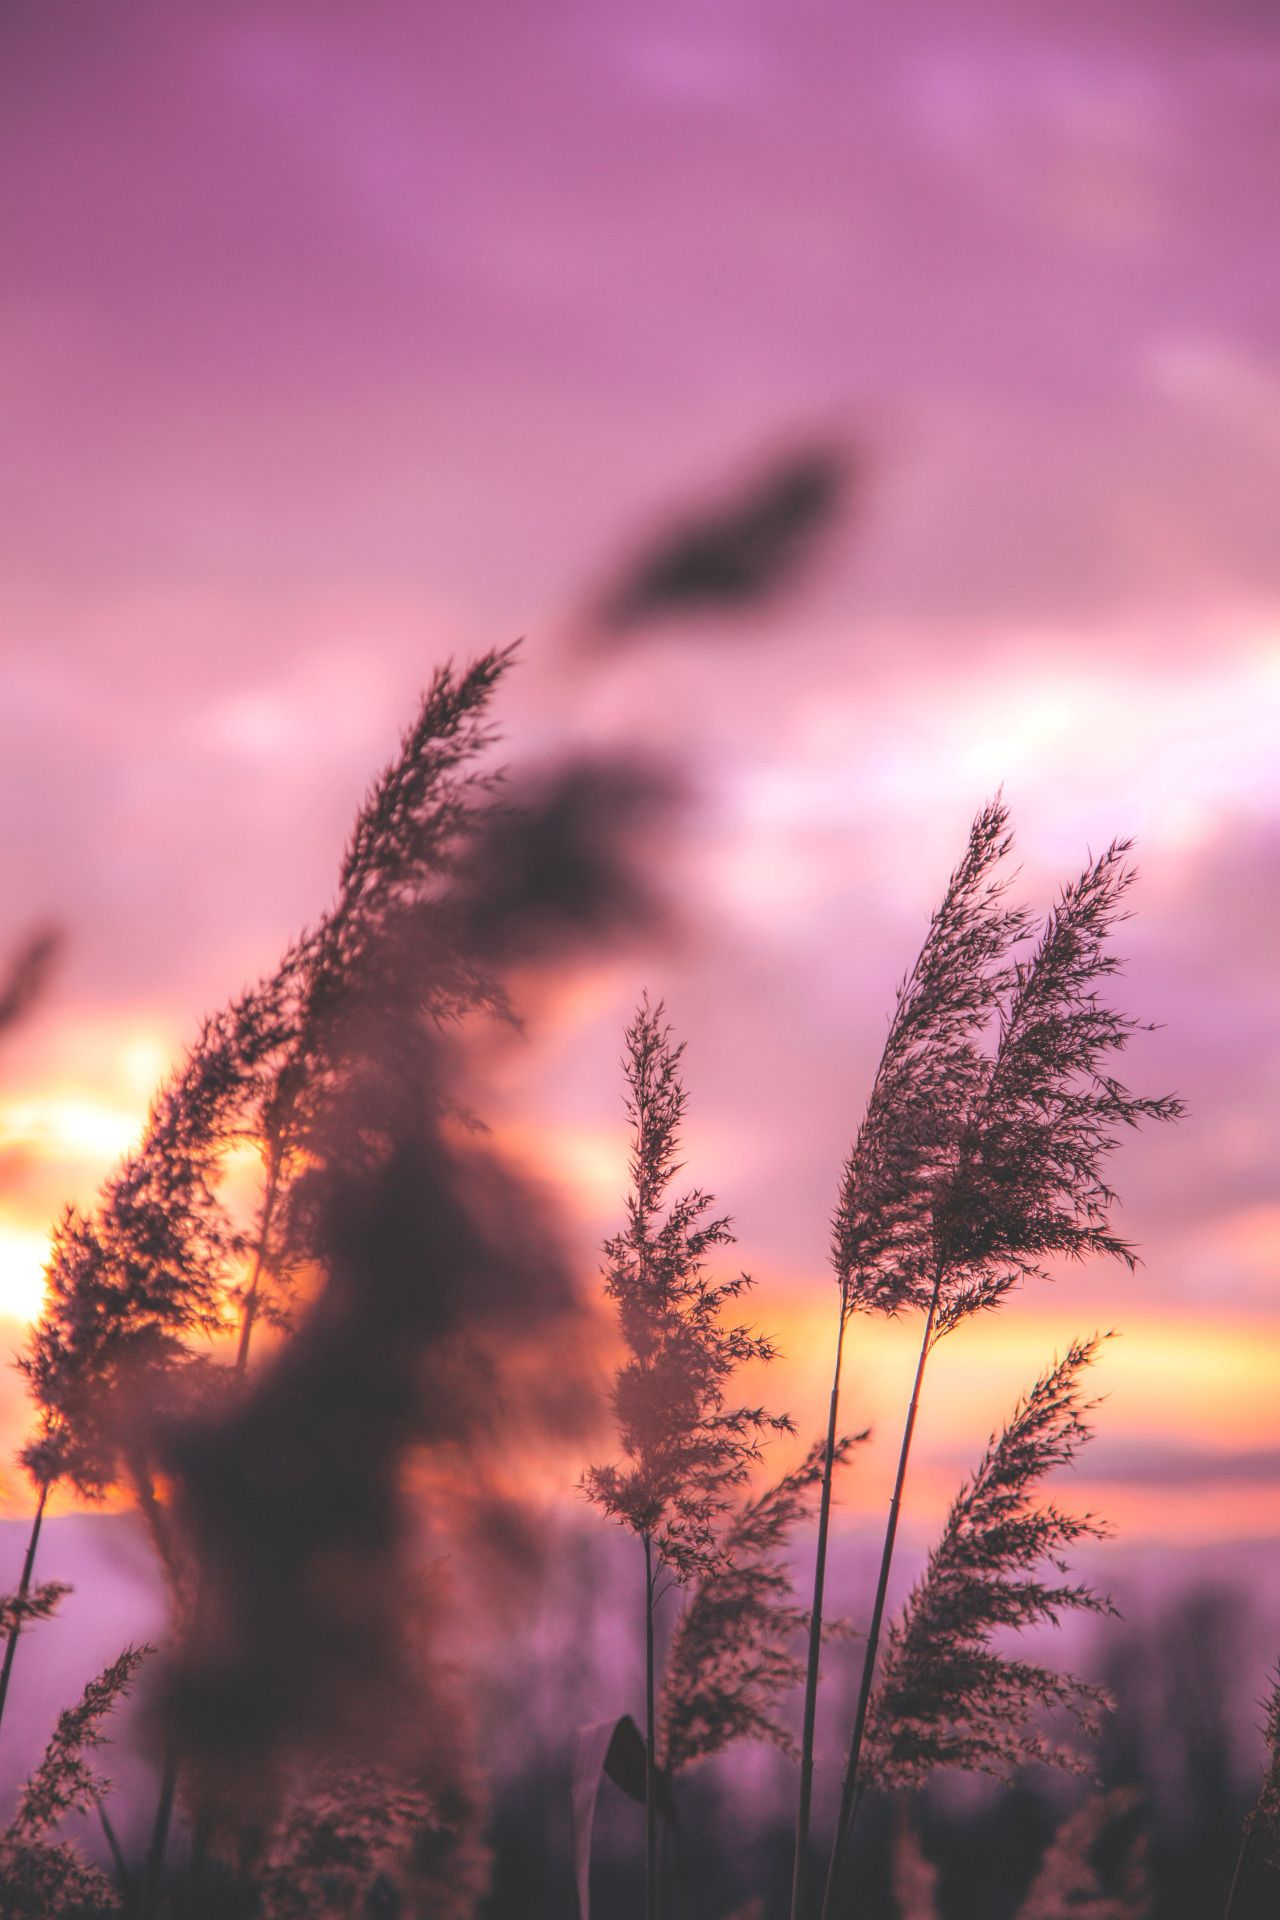 Pin By Zaniyah On All Beautiful Nature Photography Nature Pictures Scenery Hd wallpaper nature reeds grass sunset